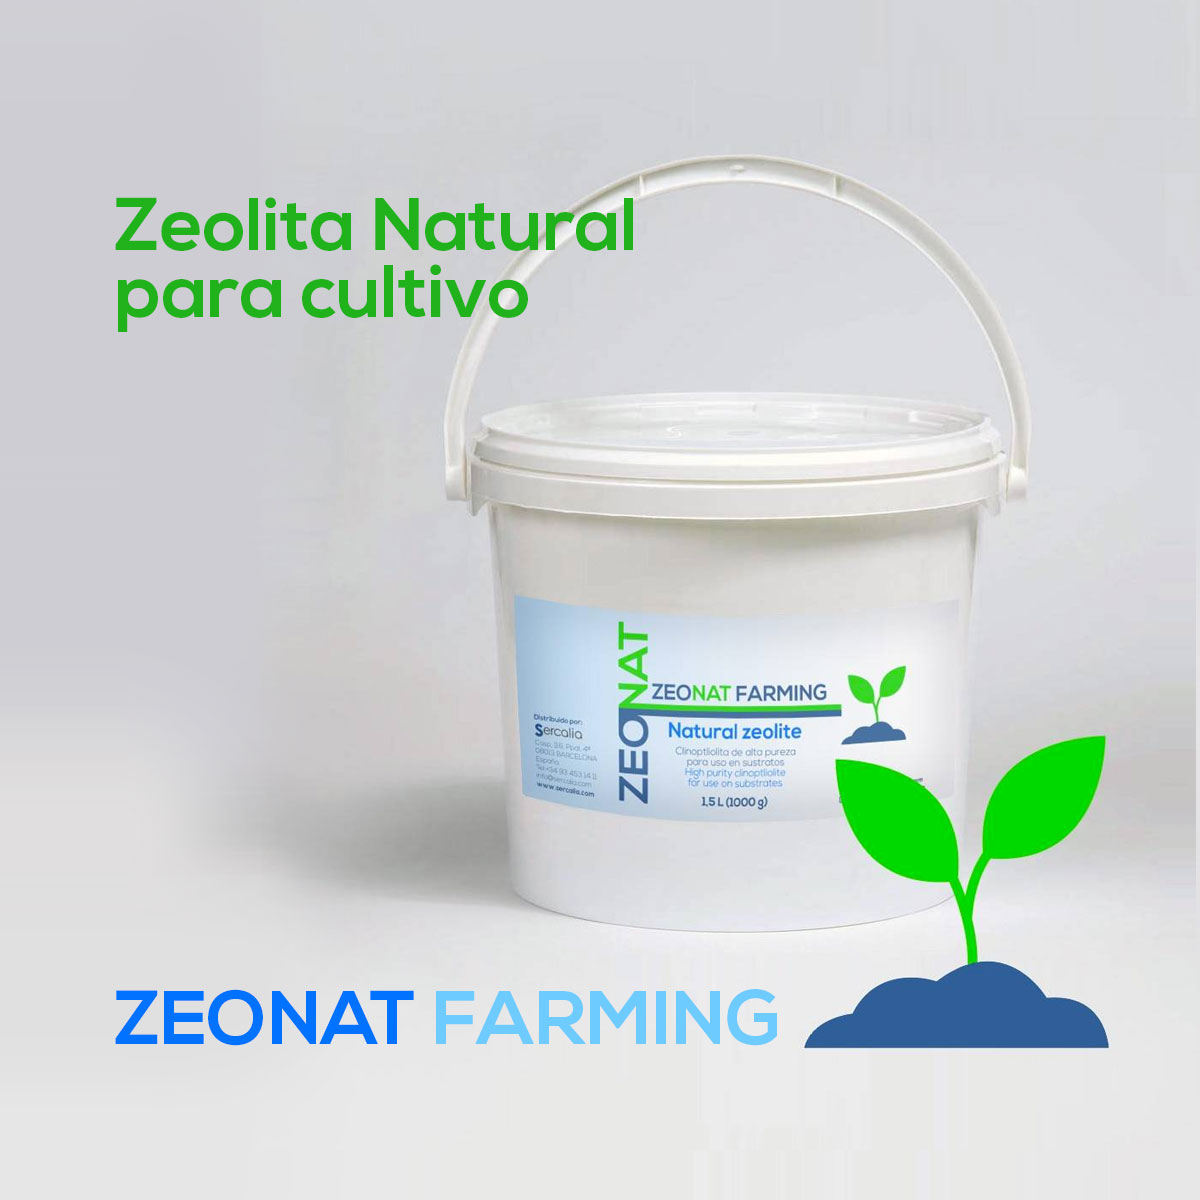 Zeolita natural Zeonat Farming